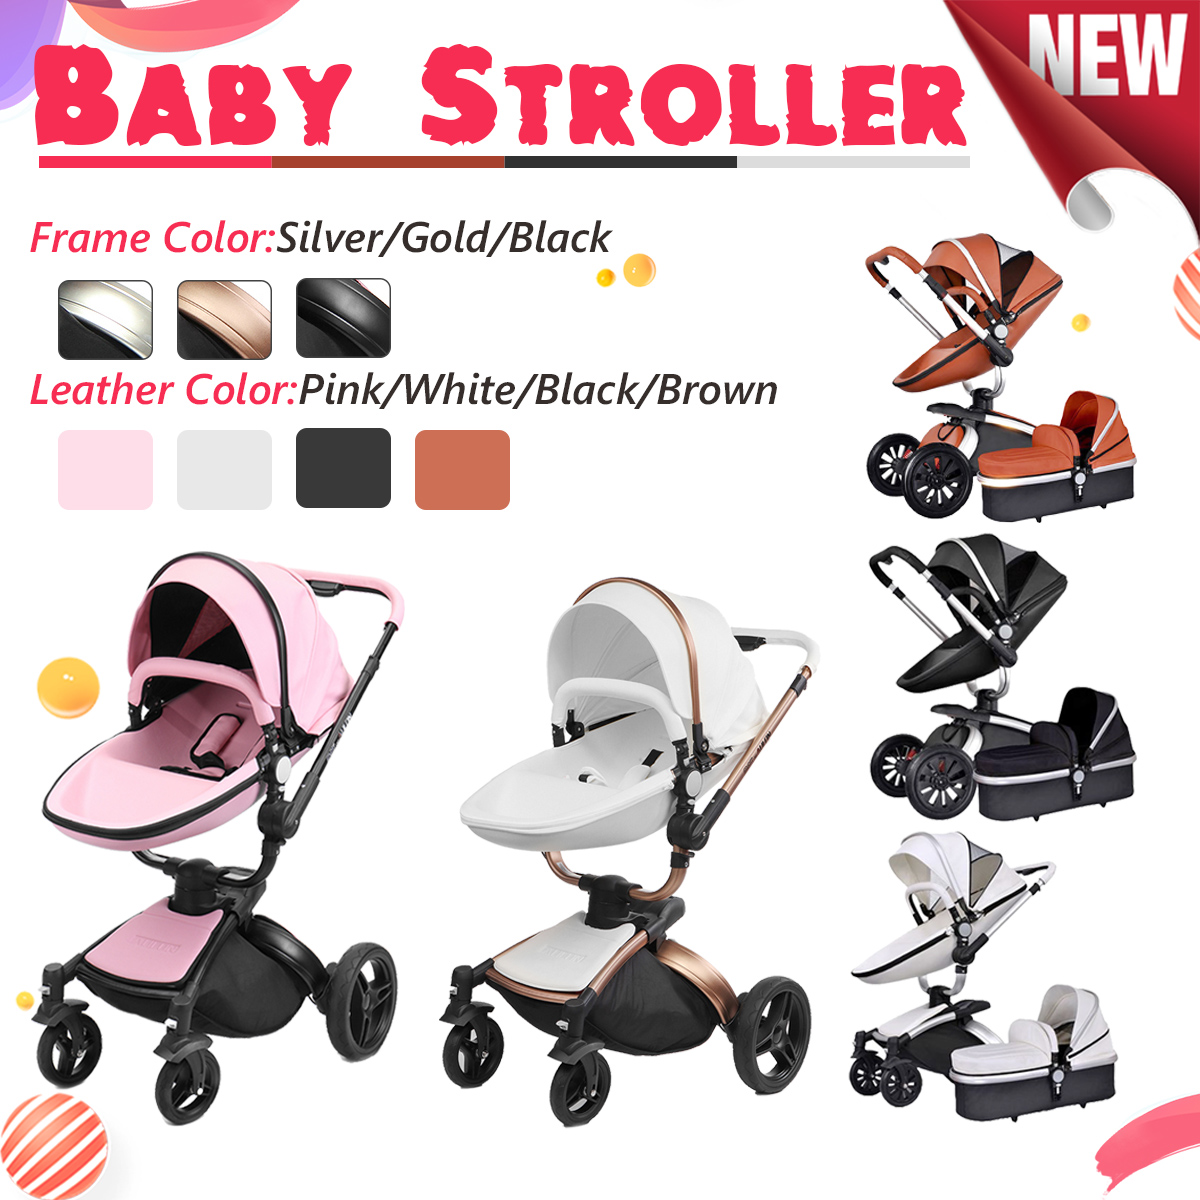 2 in 1/3 in 1 Baby stroller With Car Seat High Landscope Folding Baby Carriage For Child From 0-3 Years Prams For Newborns baby stroller high landscape trolley baby car wheelchair 2 in 1 prams for newborns baby portable bassinet folding baby carriage